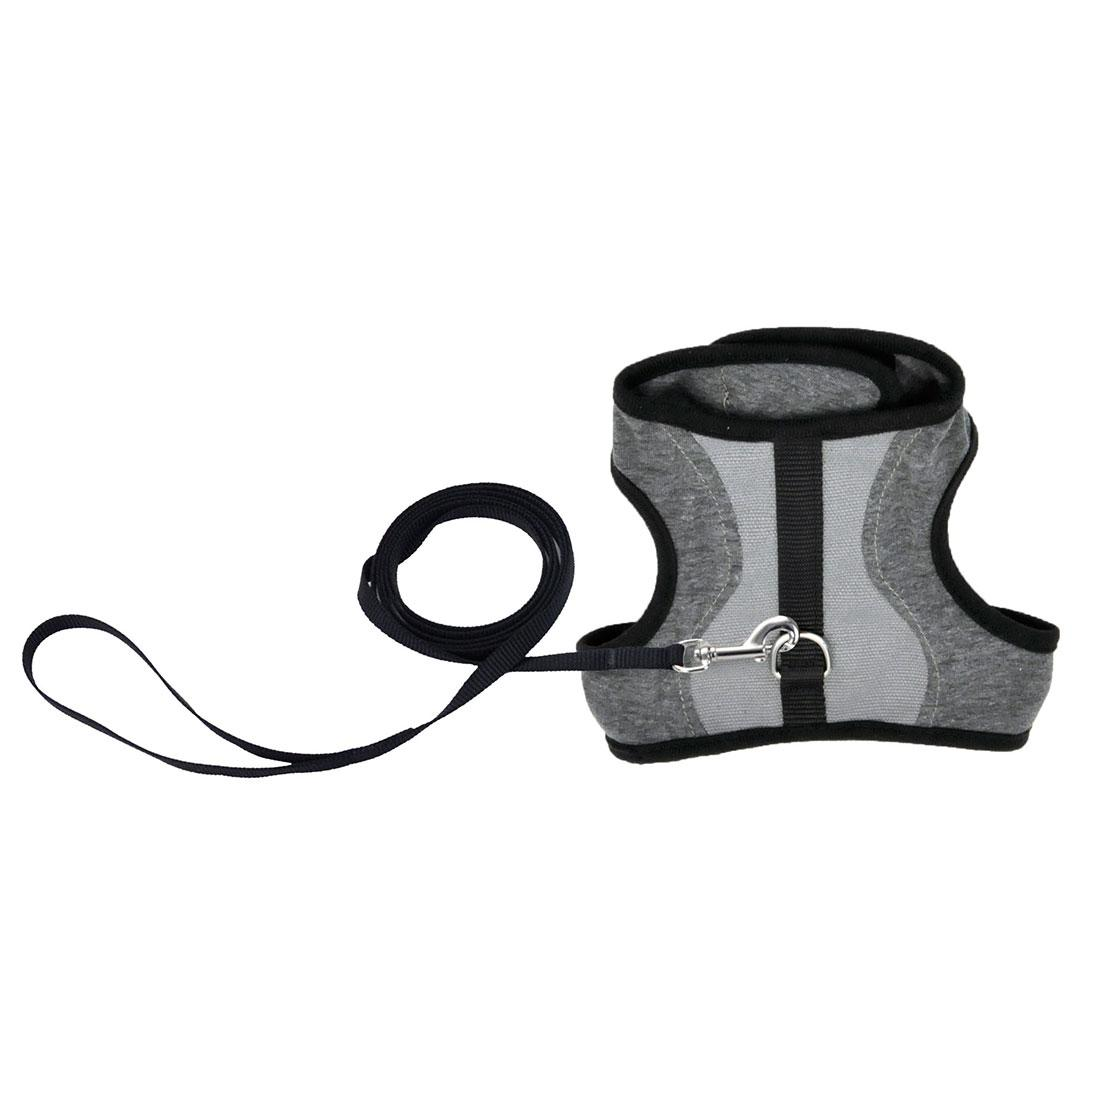 Coastal Adjustable Wrap Harness with Leash for Cats, Gray, 11-16-in